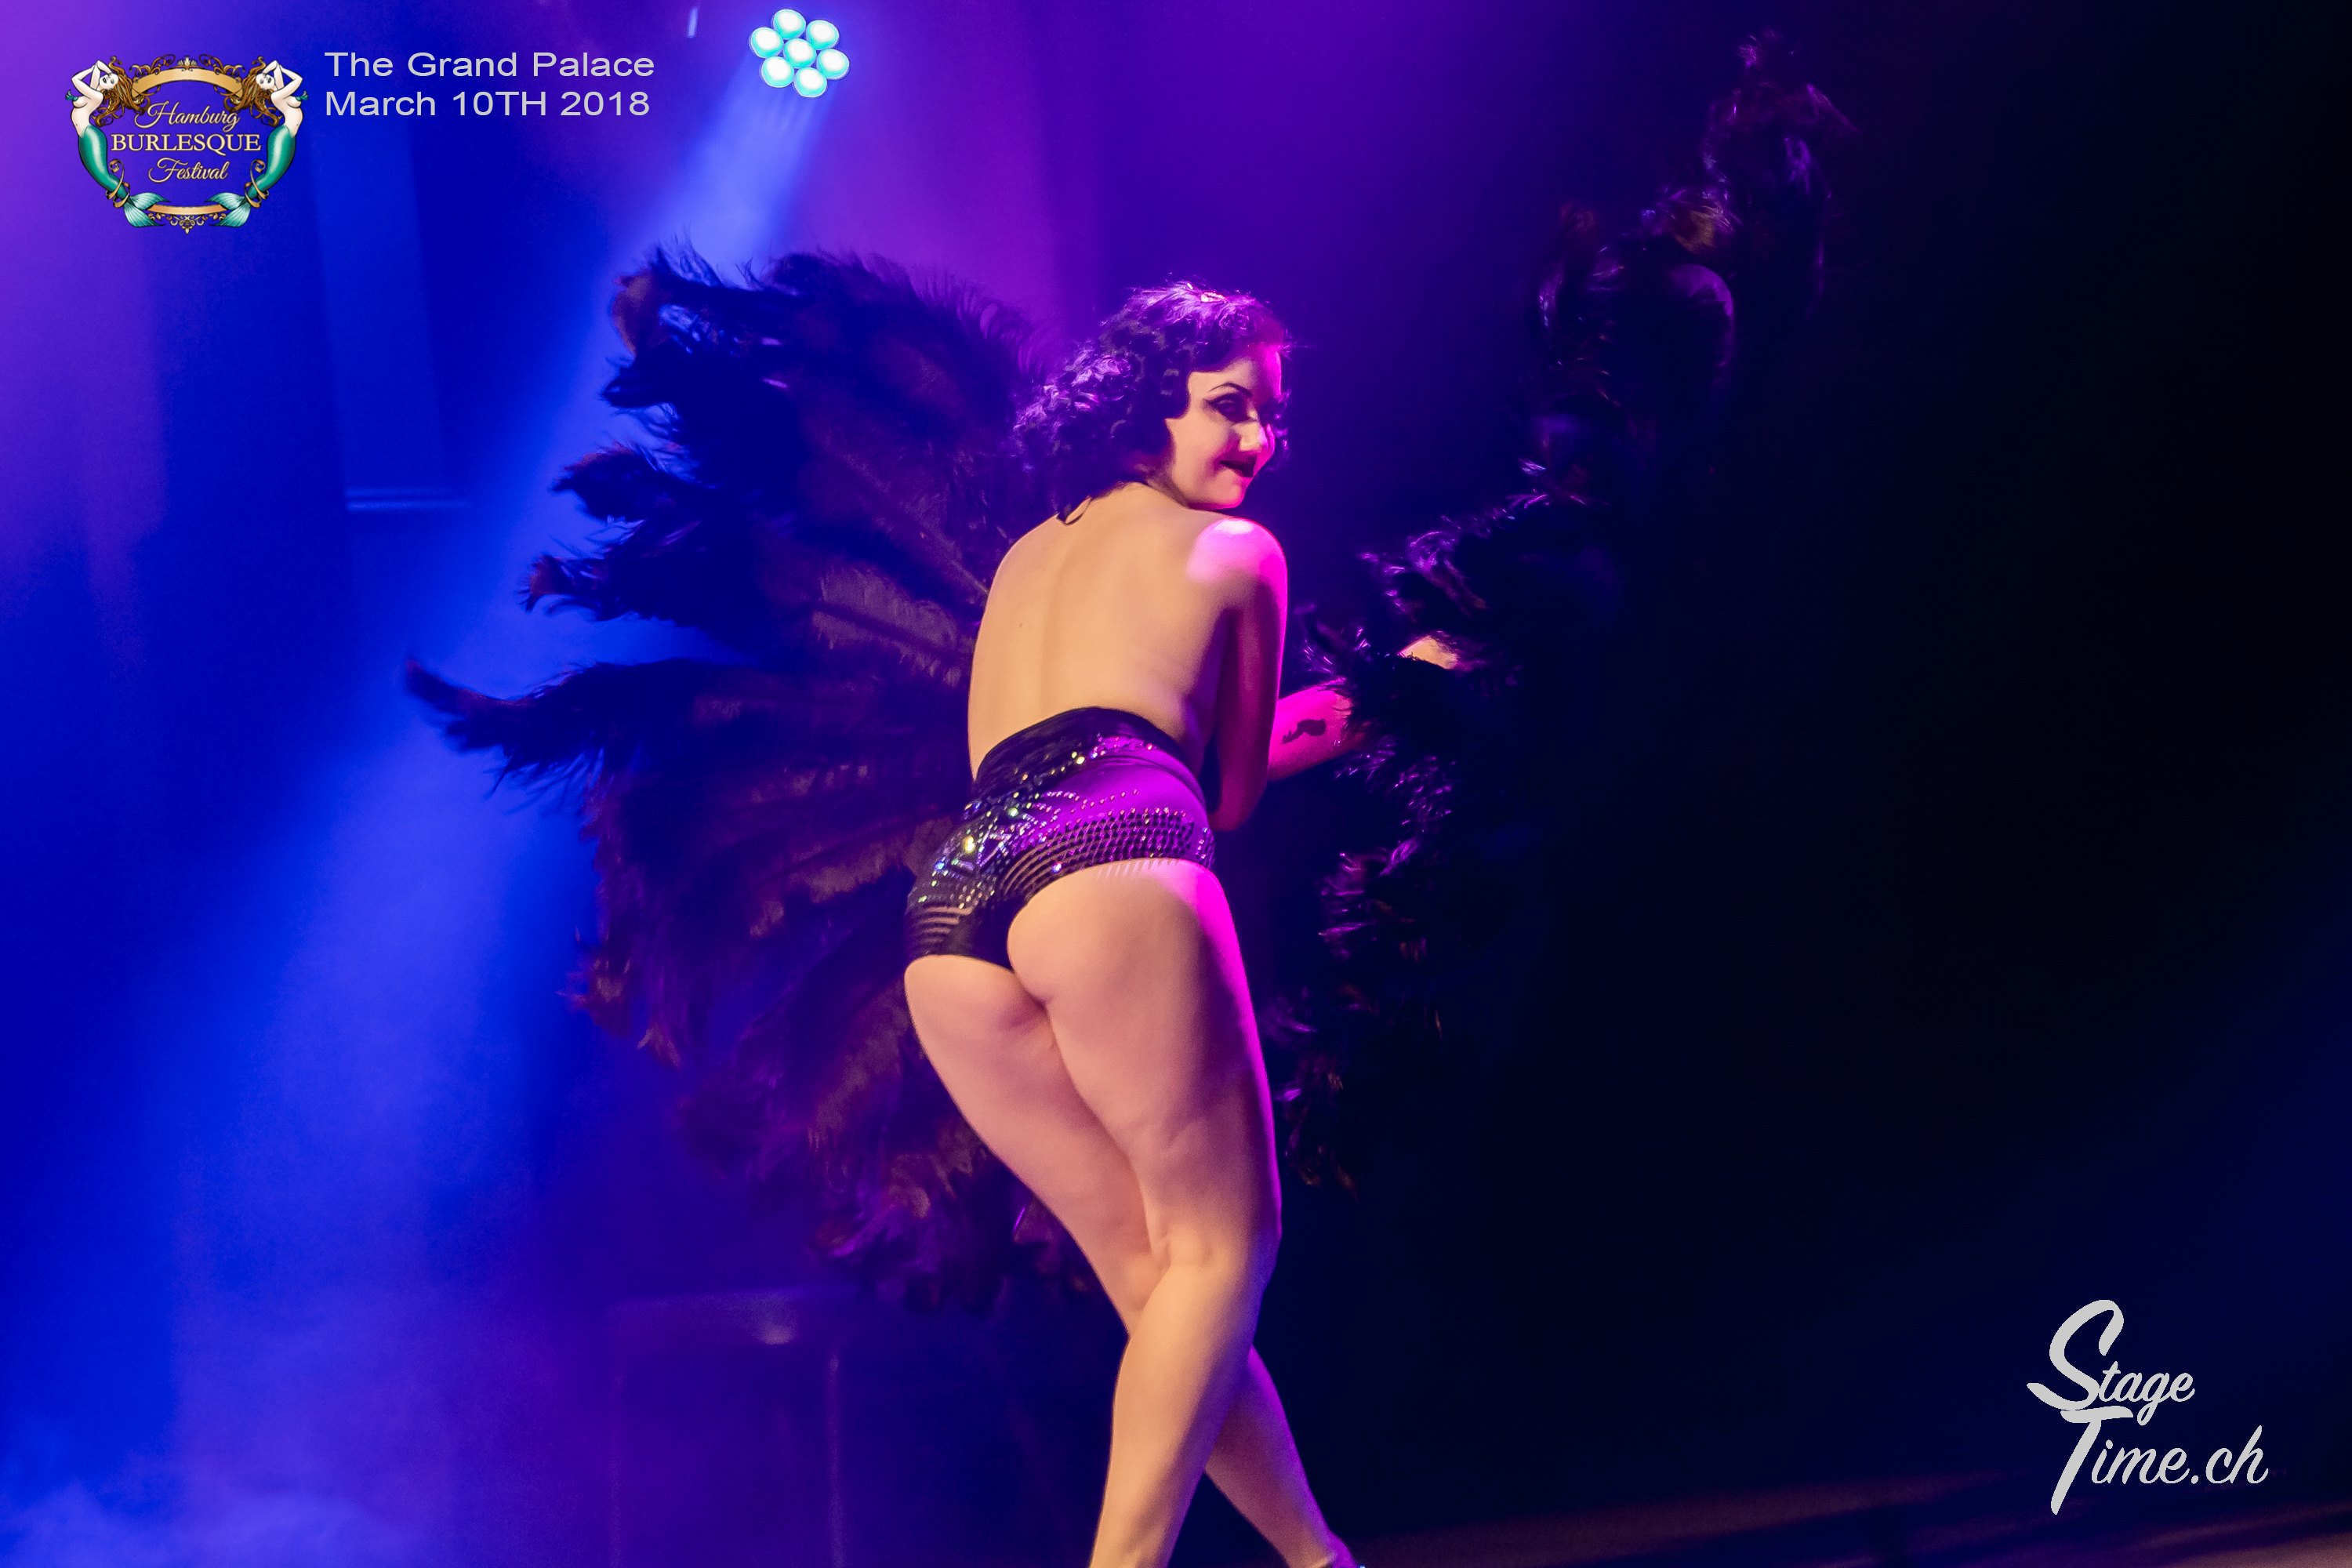 Hamburg_Burlesque_Festival_The_Grand_Palace__📷_Christoph_Gurtner_I_stagetime.ch-127